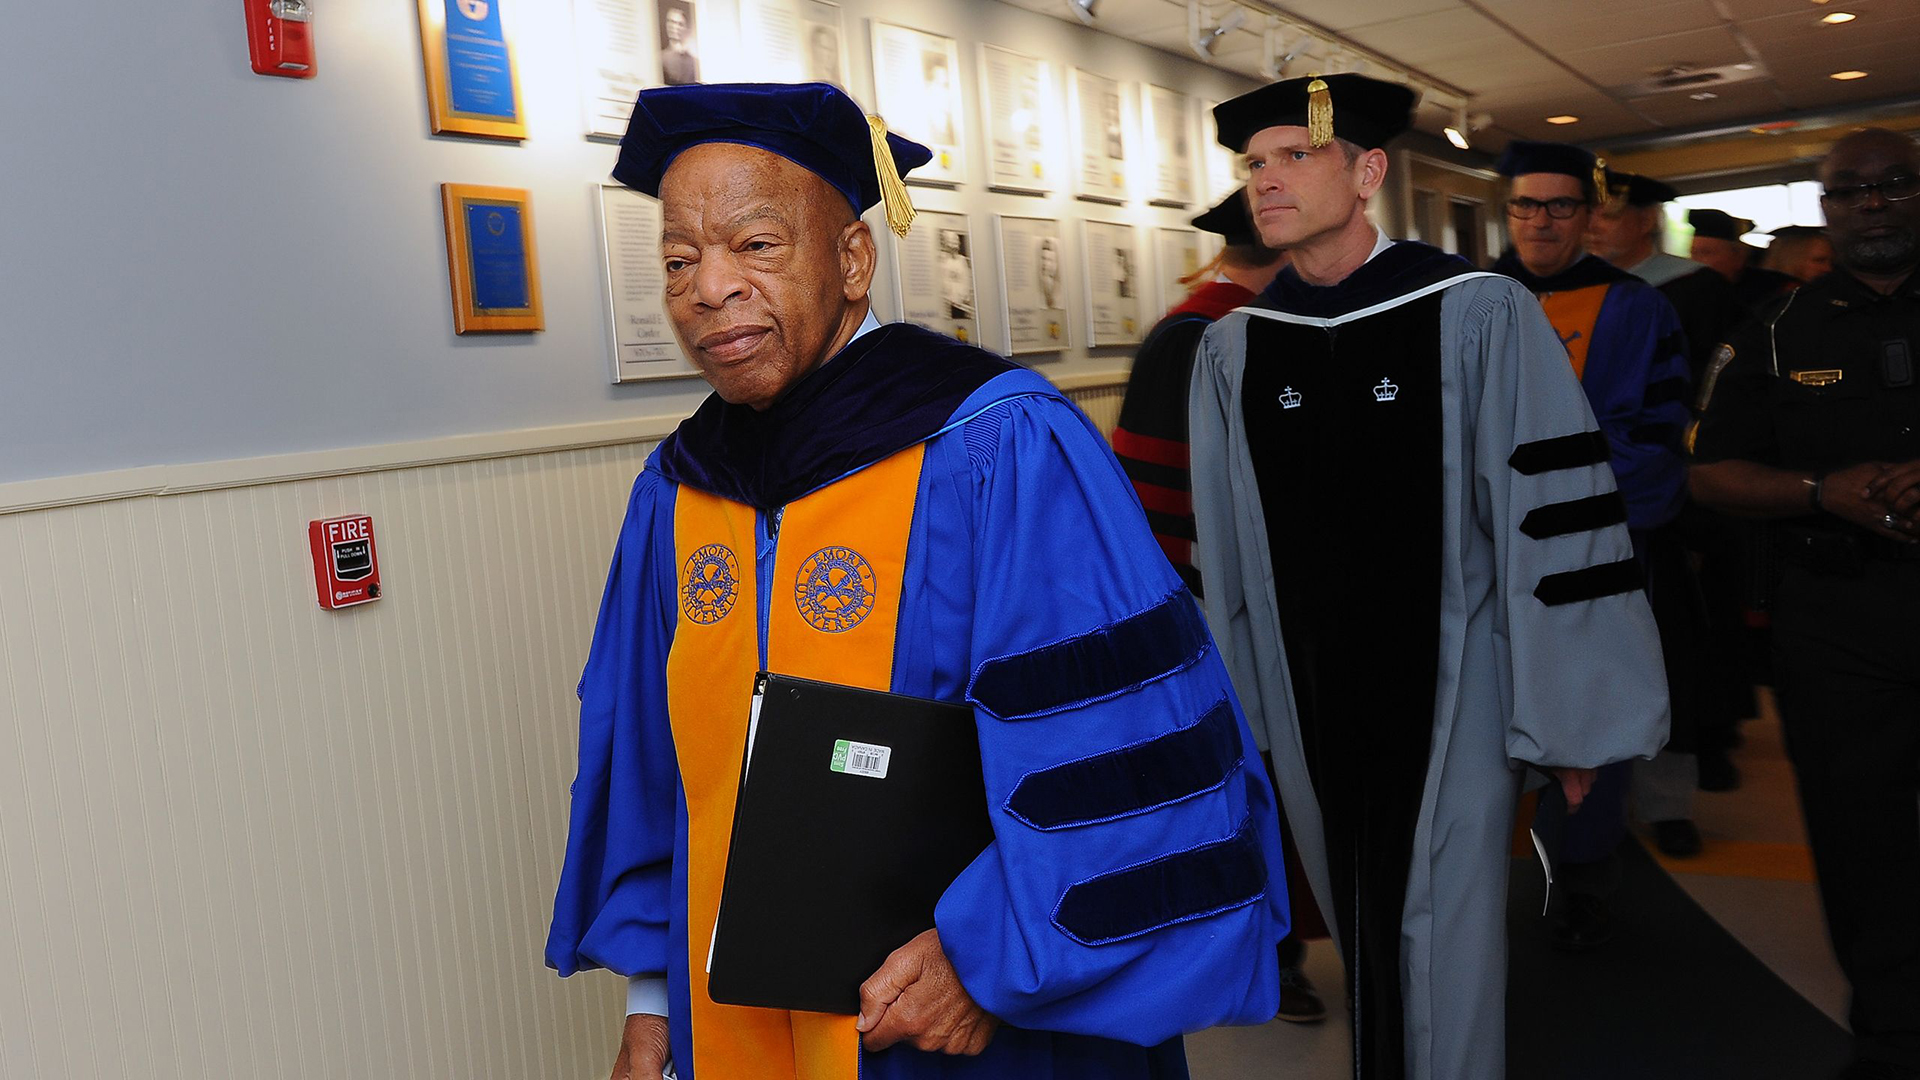 U.S. Rep. John Lewis walks toward the gym for Oxford's Commencement.